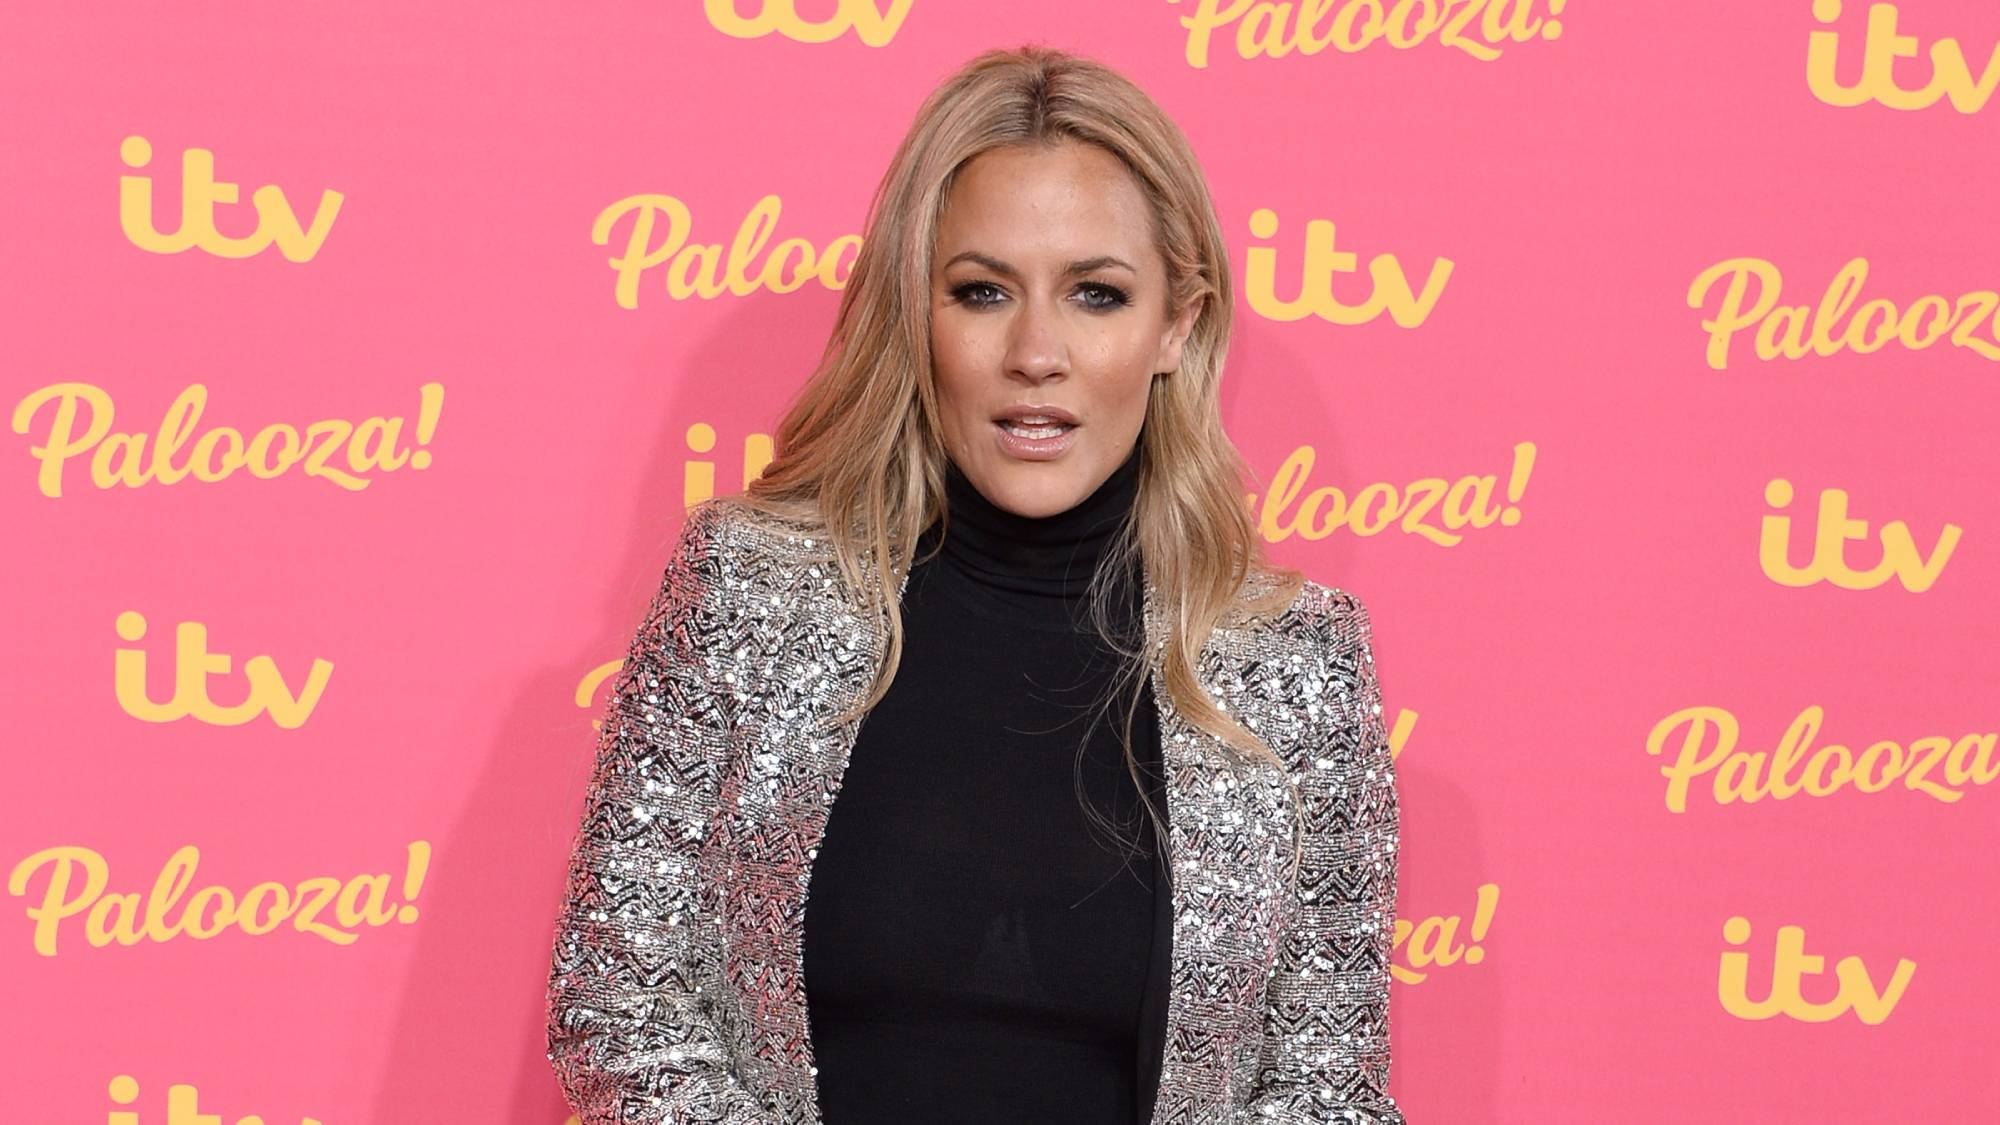 Caroline Flack has been arrested and charged with assault